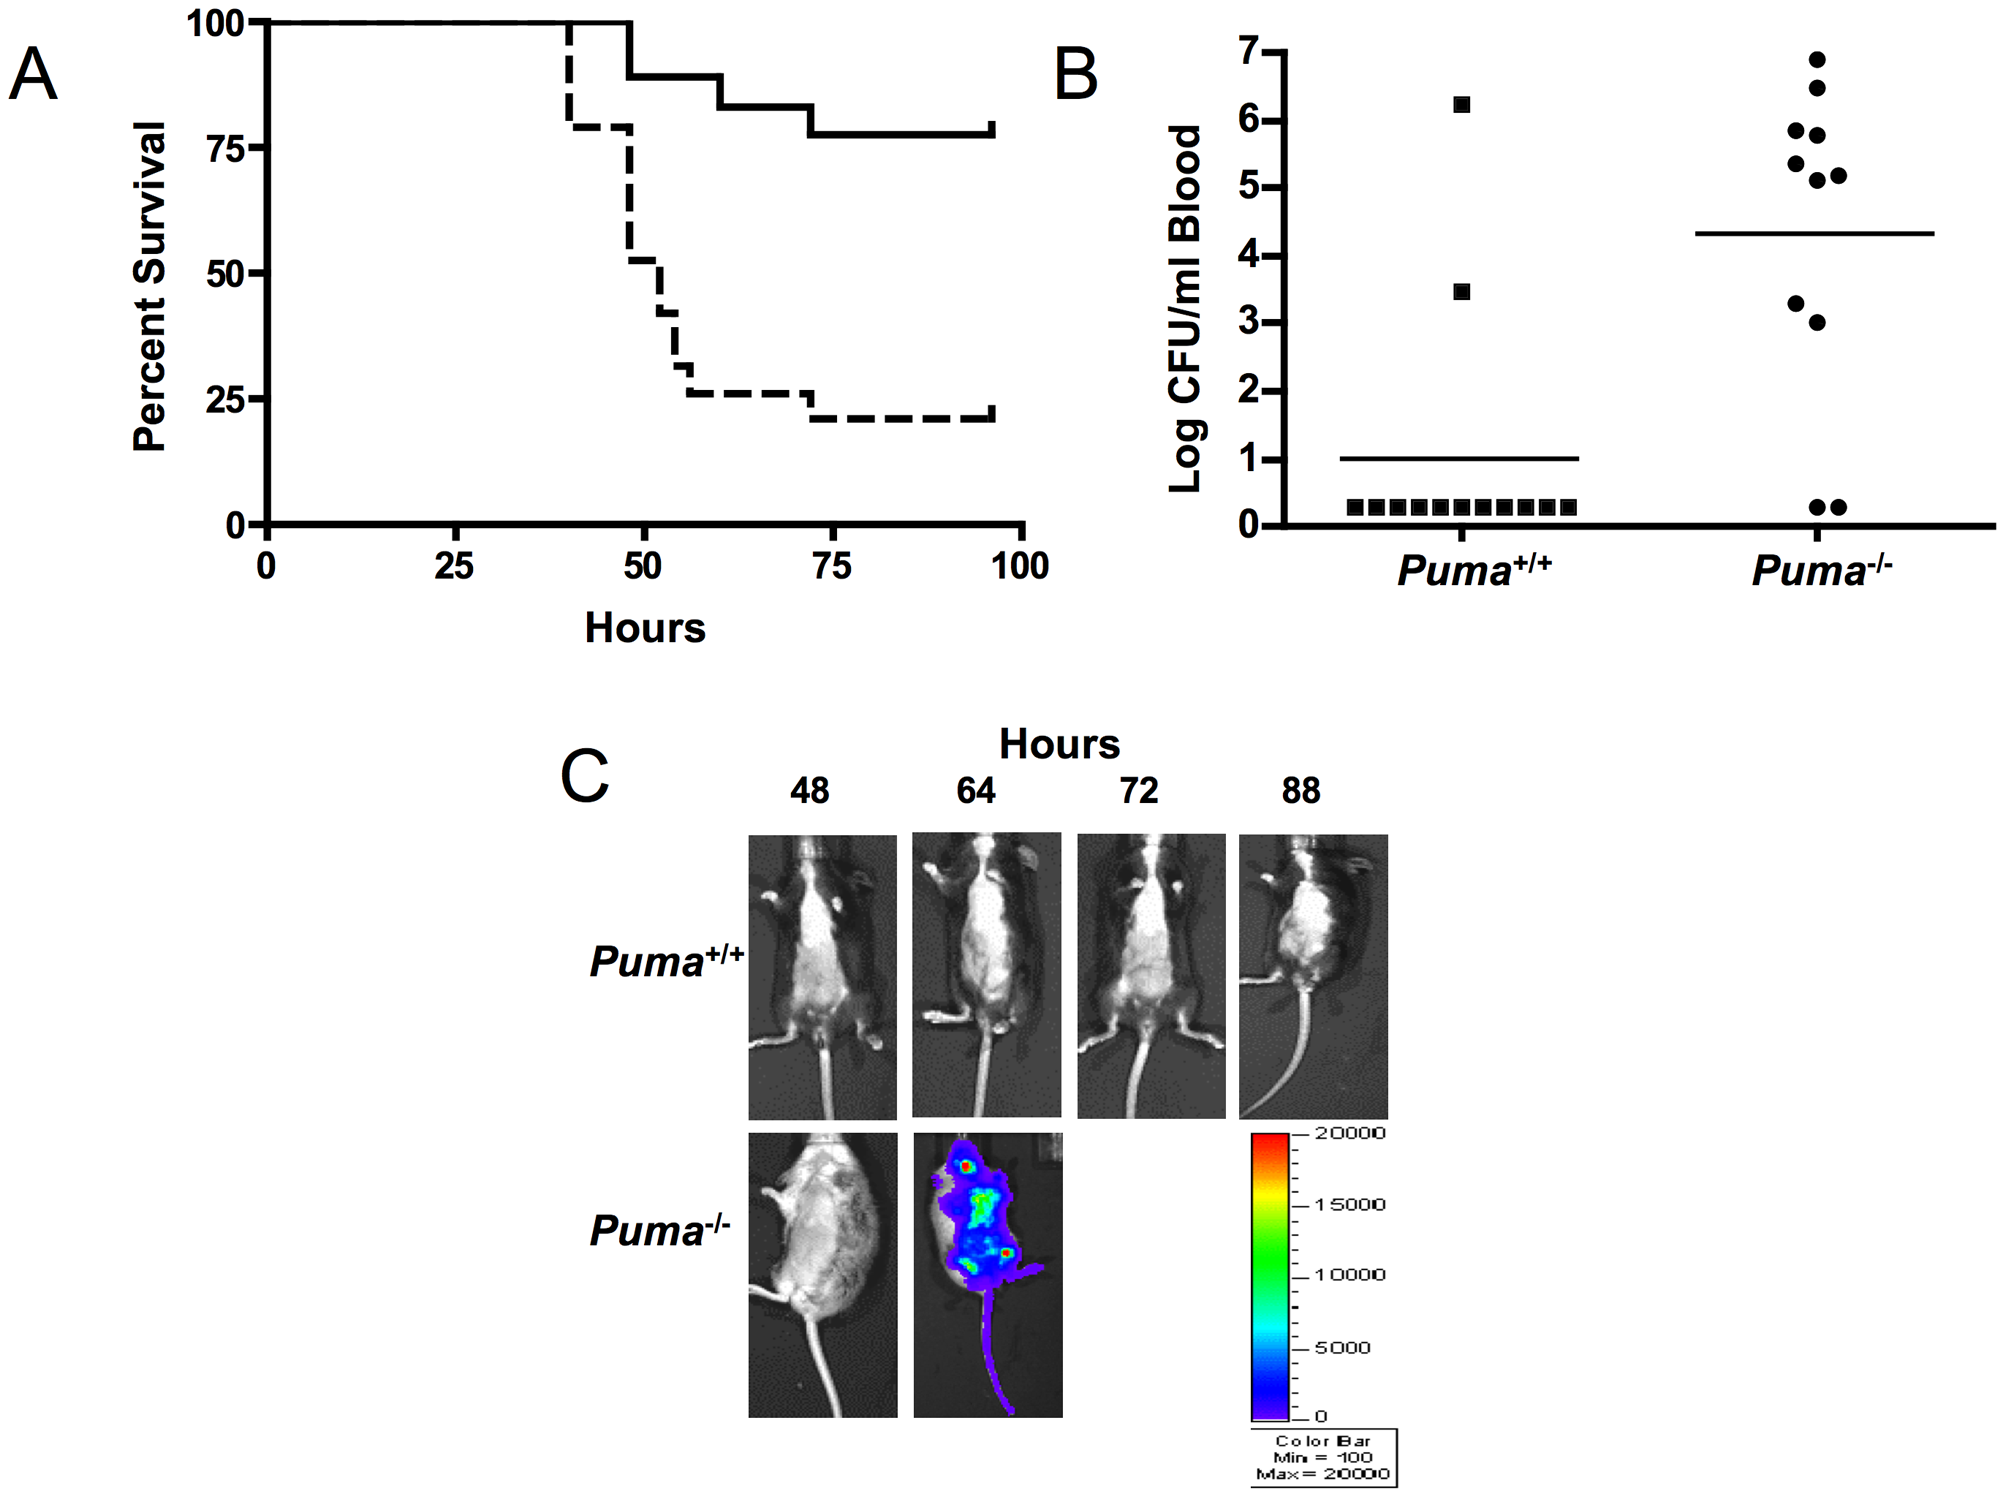 Puma-deficient mice are sensitive to pneumococcal lung infections.